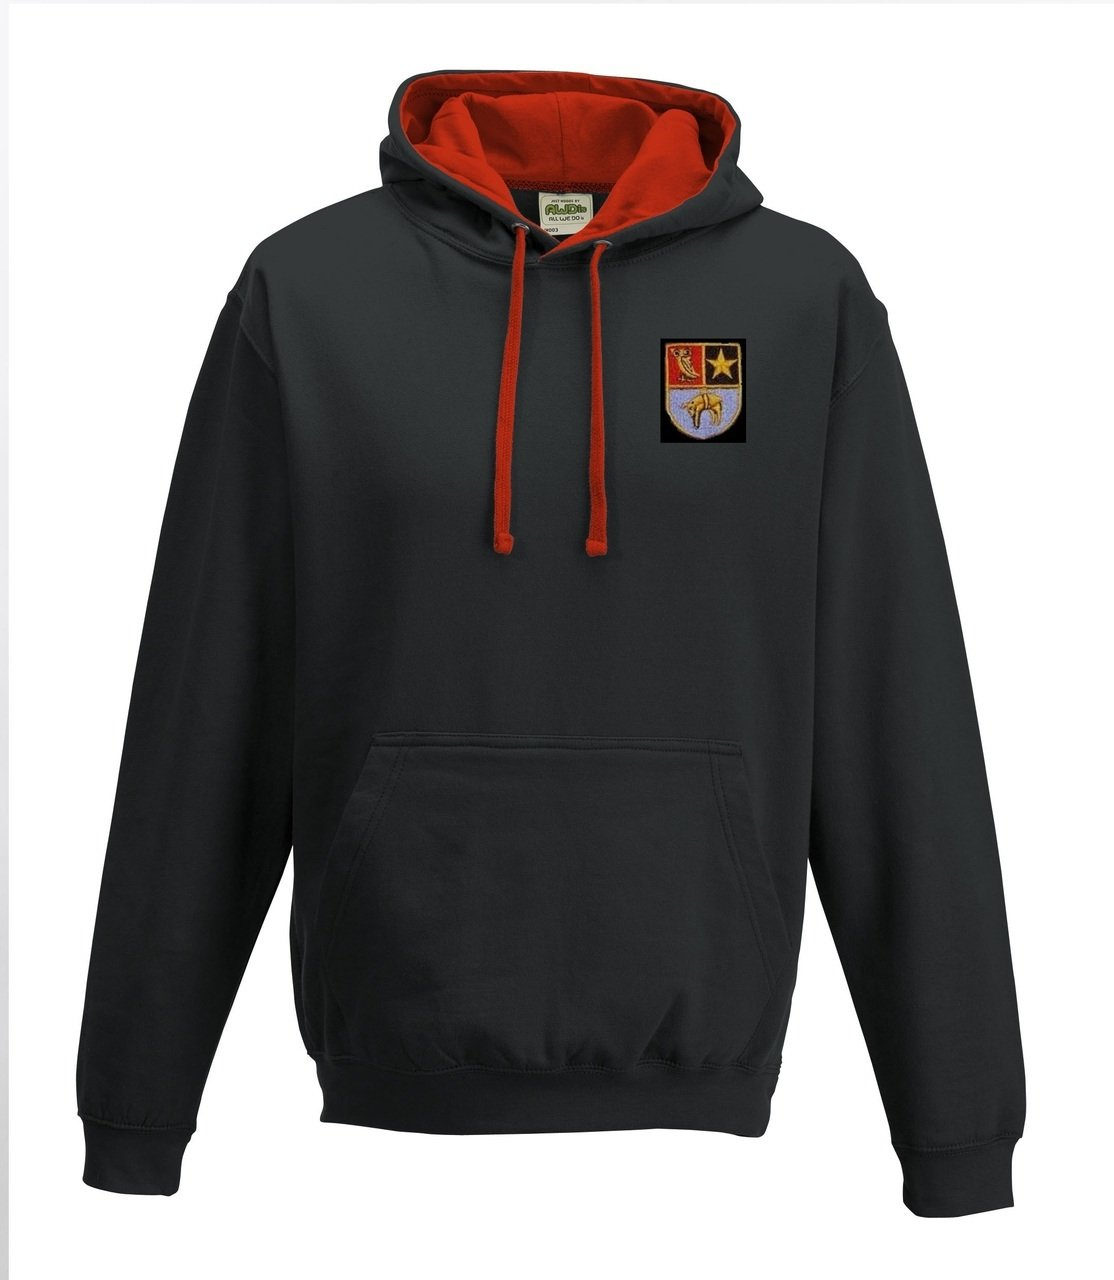 Leeds Mods 2 Tone Hooded Top